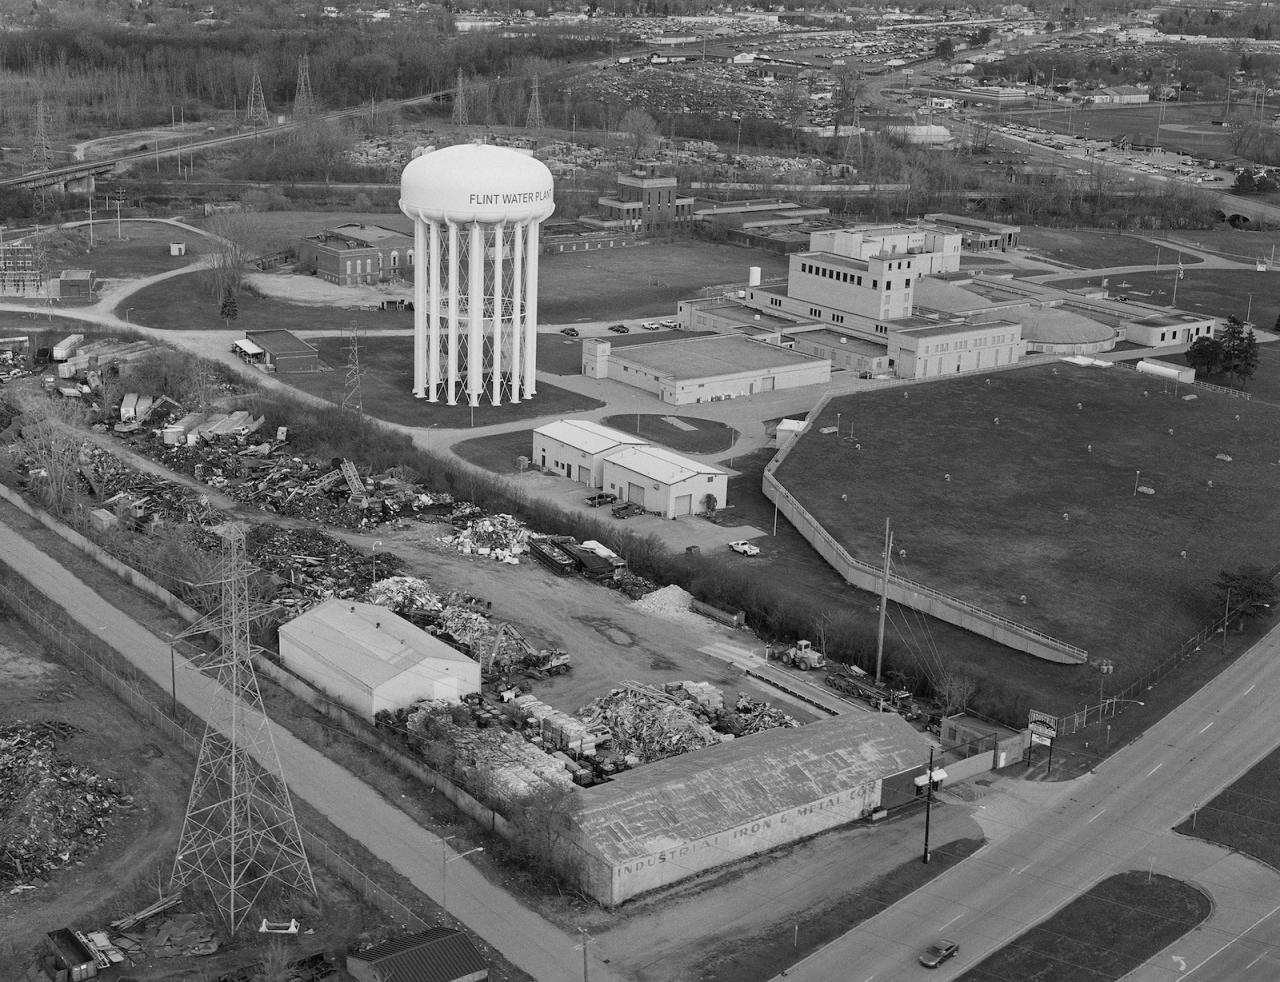 LaToya Ruby Frazier City of Flint Water Plant and the Industrial Iron & Metal Co. (2016/17)